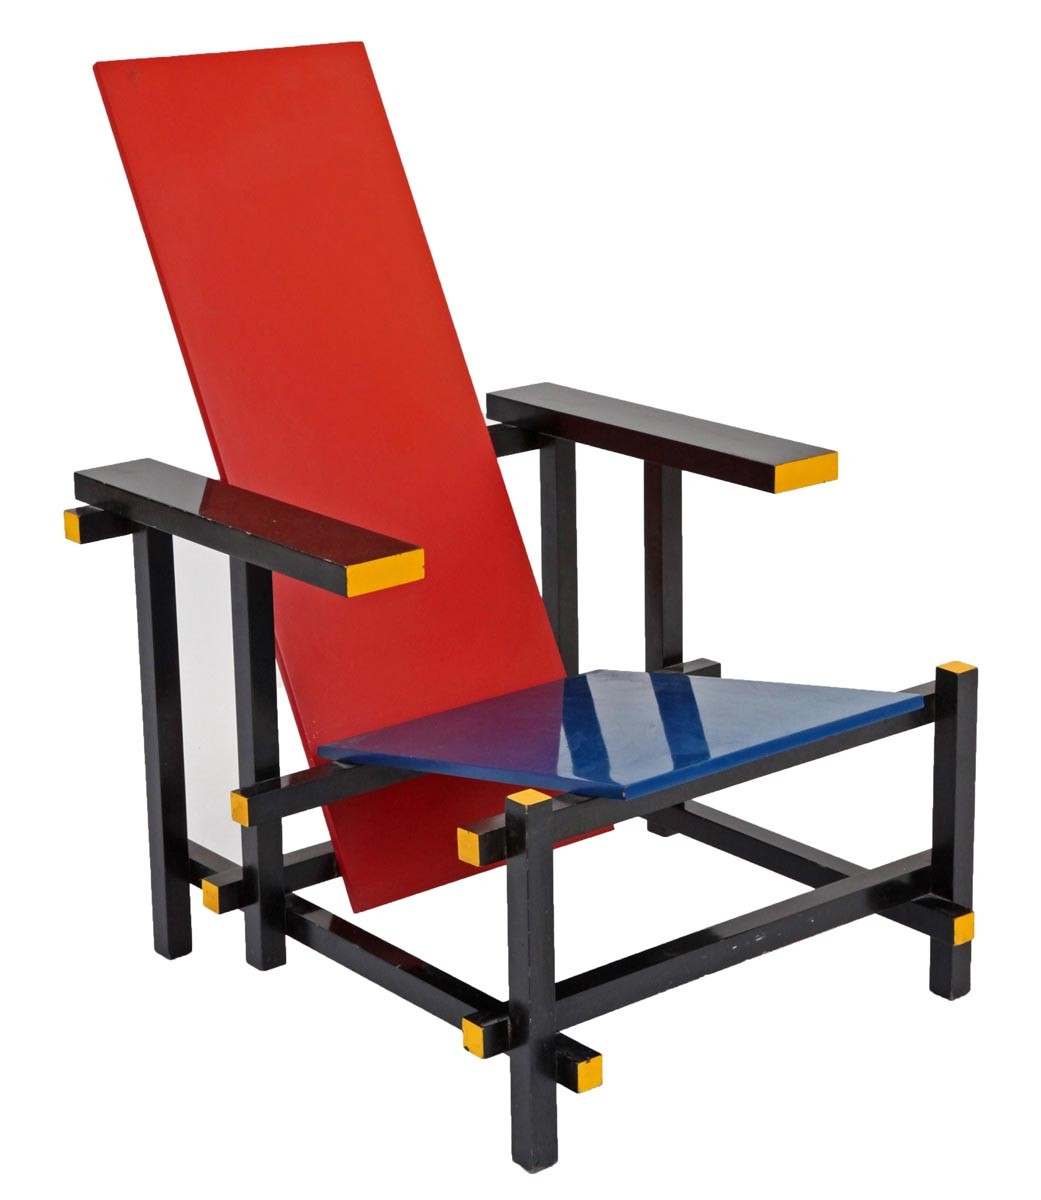 Gerrit rietveld chair for sale - Red And Blue Chair By Gerrit Thomas Rietveld